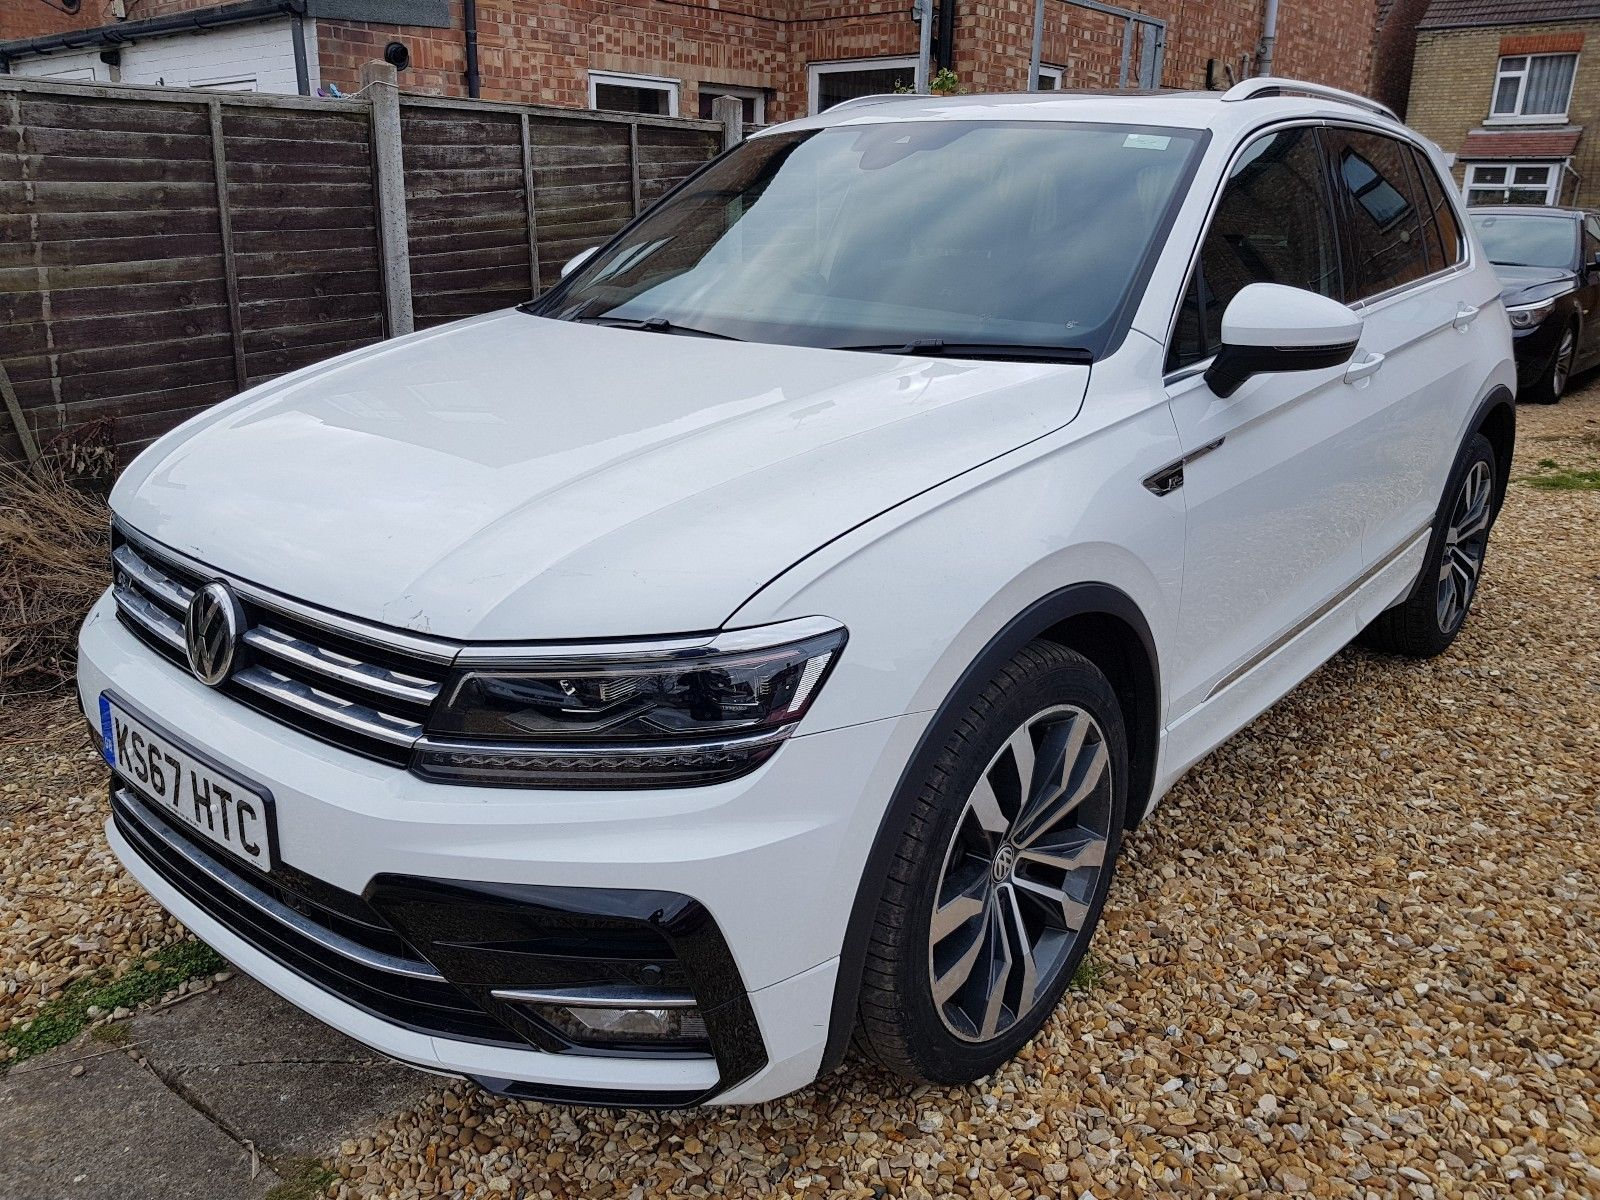 Ebay 2017 Vw Tiguan 2 0 Tdi R Line 4motion Dsg Sel Very Light Damage Unrecorded Carparts Carrepair